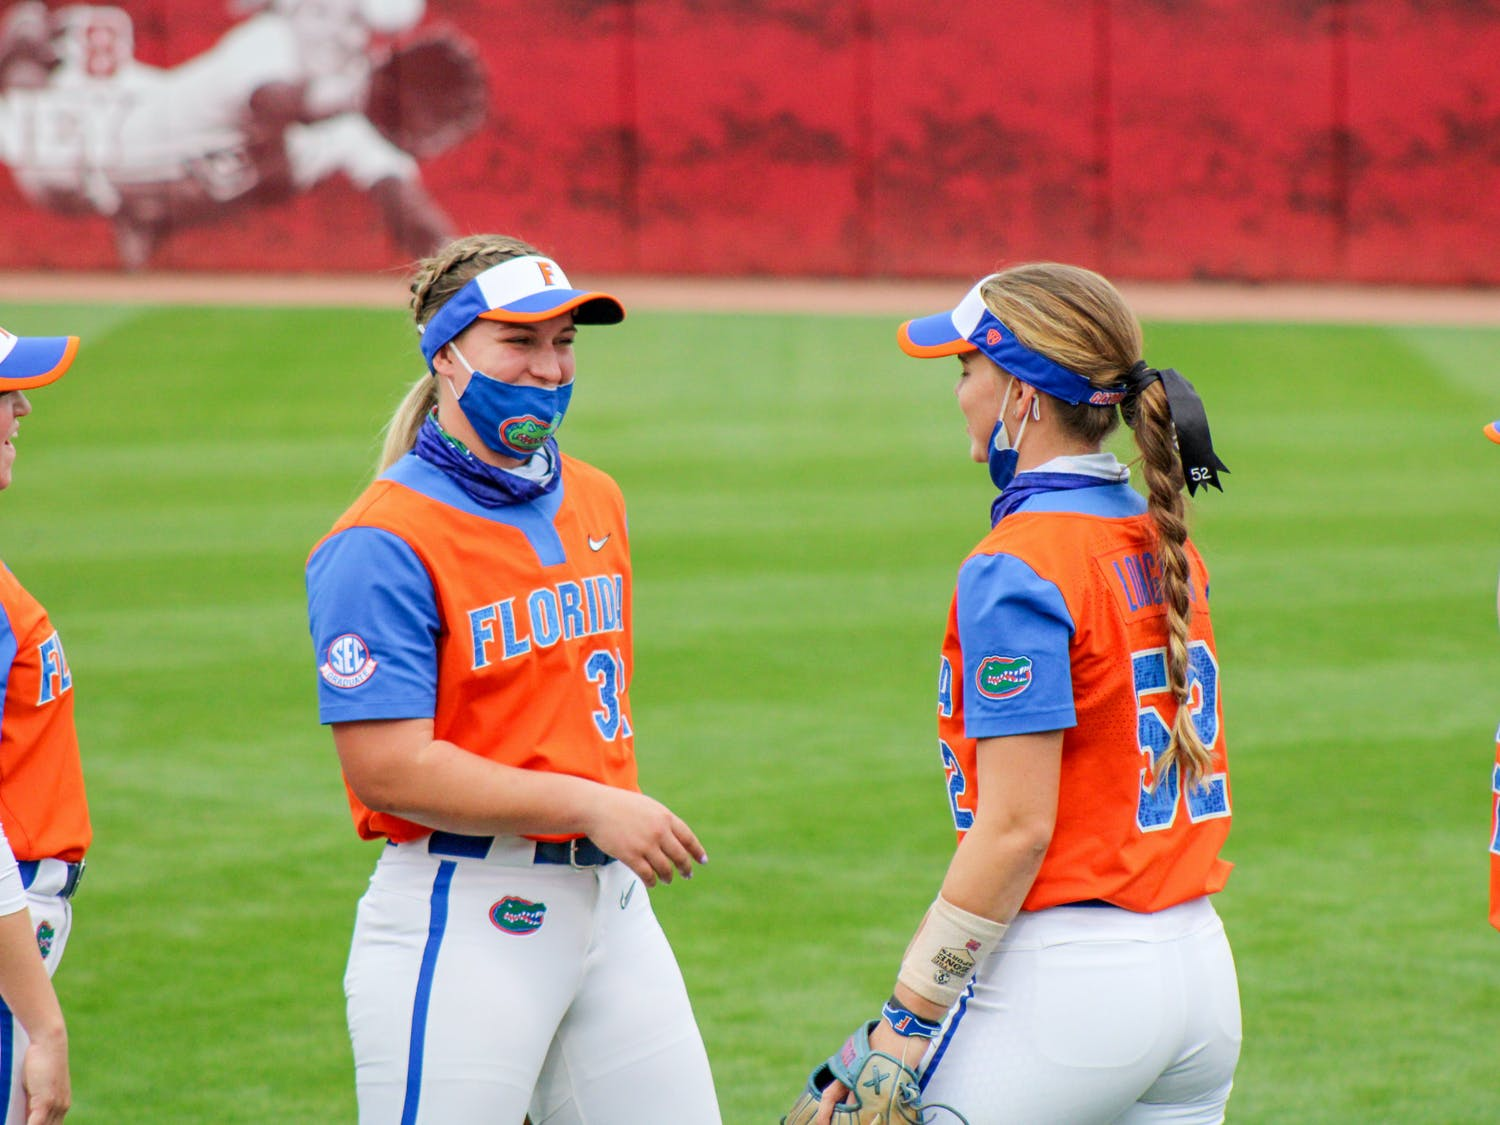 Florida softball looks to clinch a share of the SEC Championship this weekend against Texas A&M